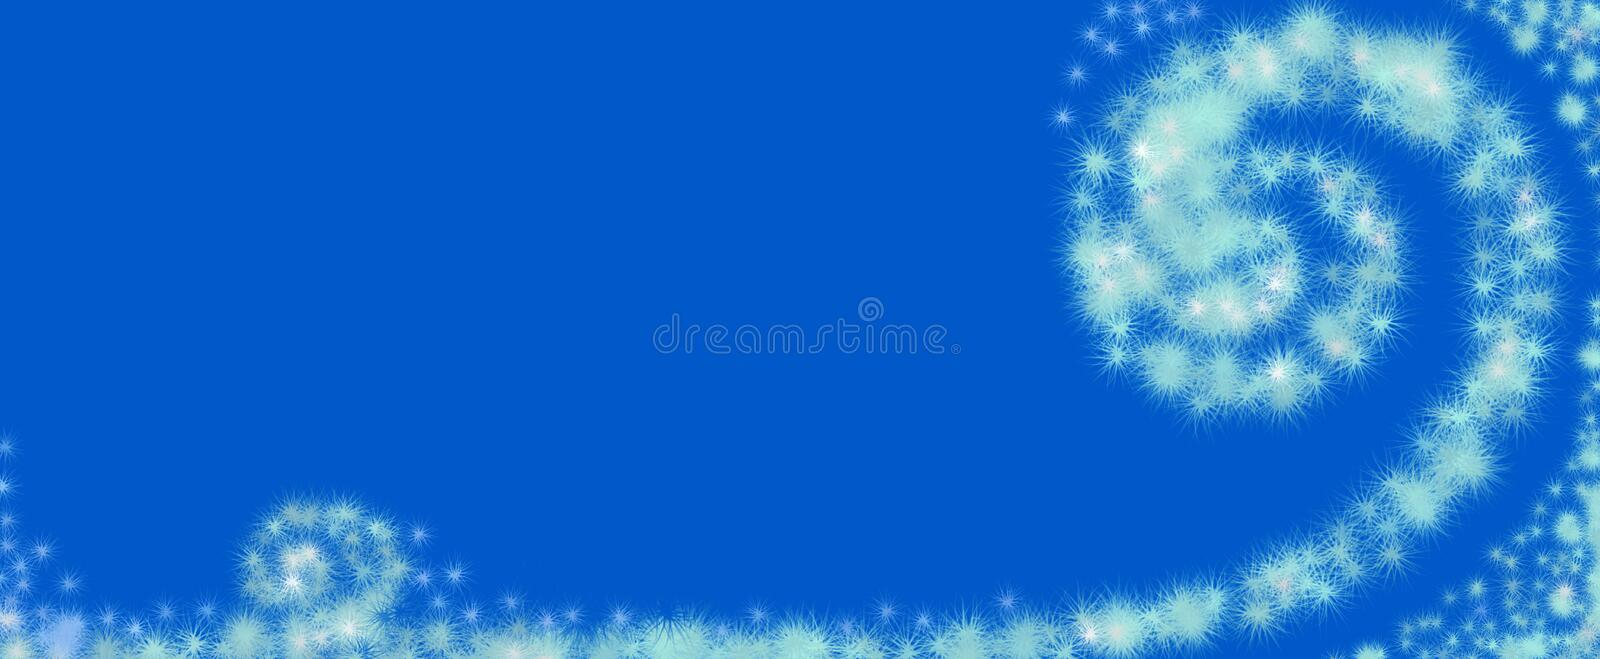 Download Whirlwind Of Abstract Snowflakes Stock Photo - Image: 17746644